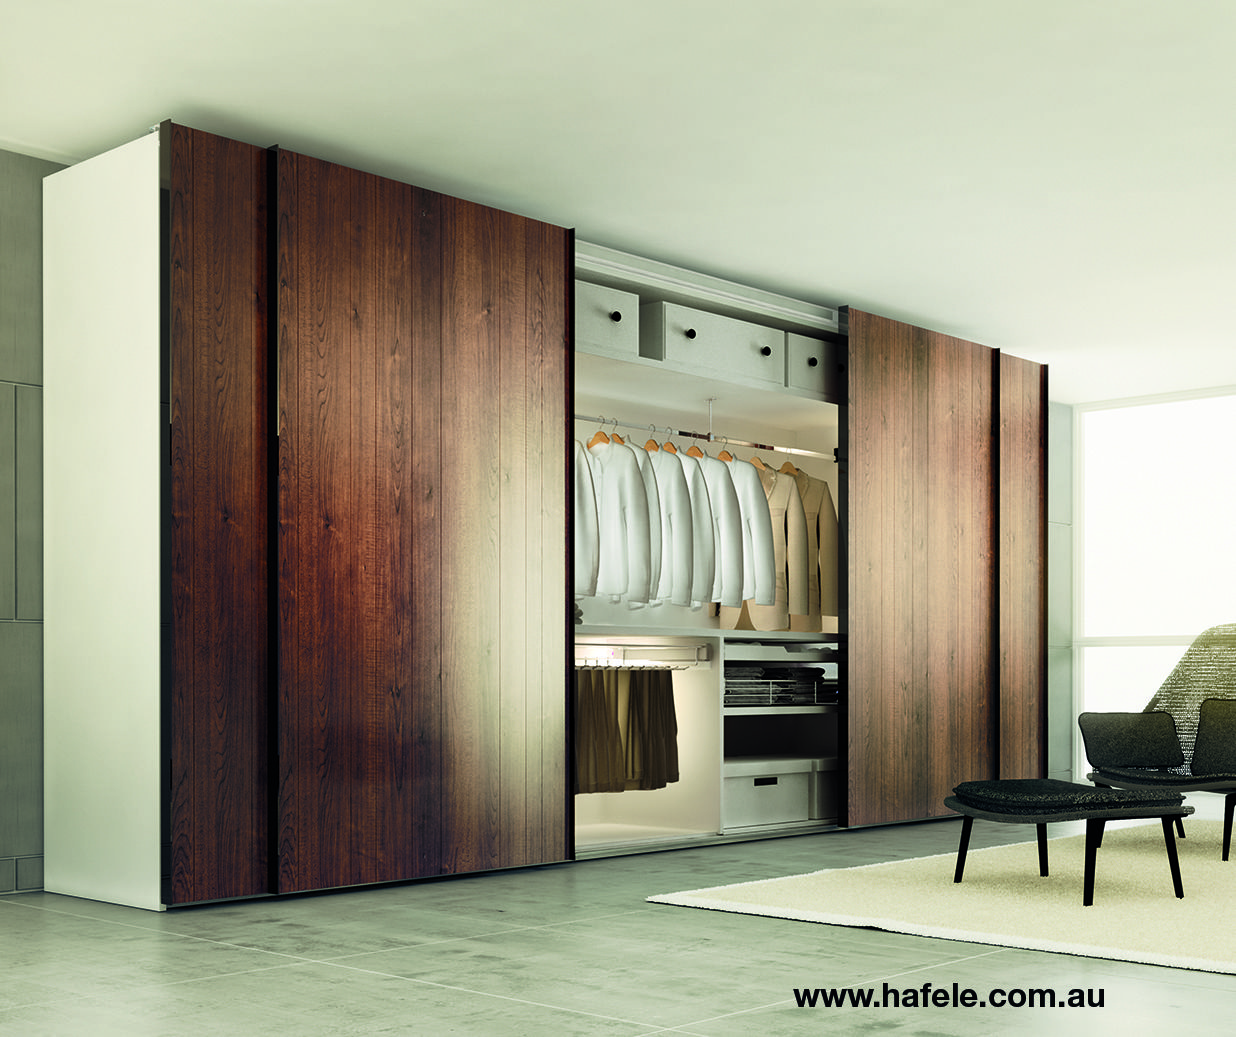 Elegant A Wardrobe That Contains More Than Just Clothes. With Hafele Good Looking